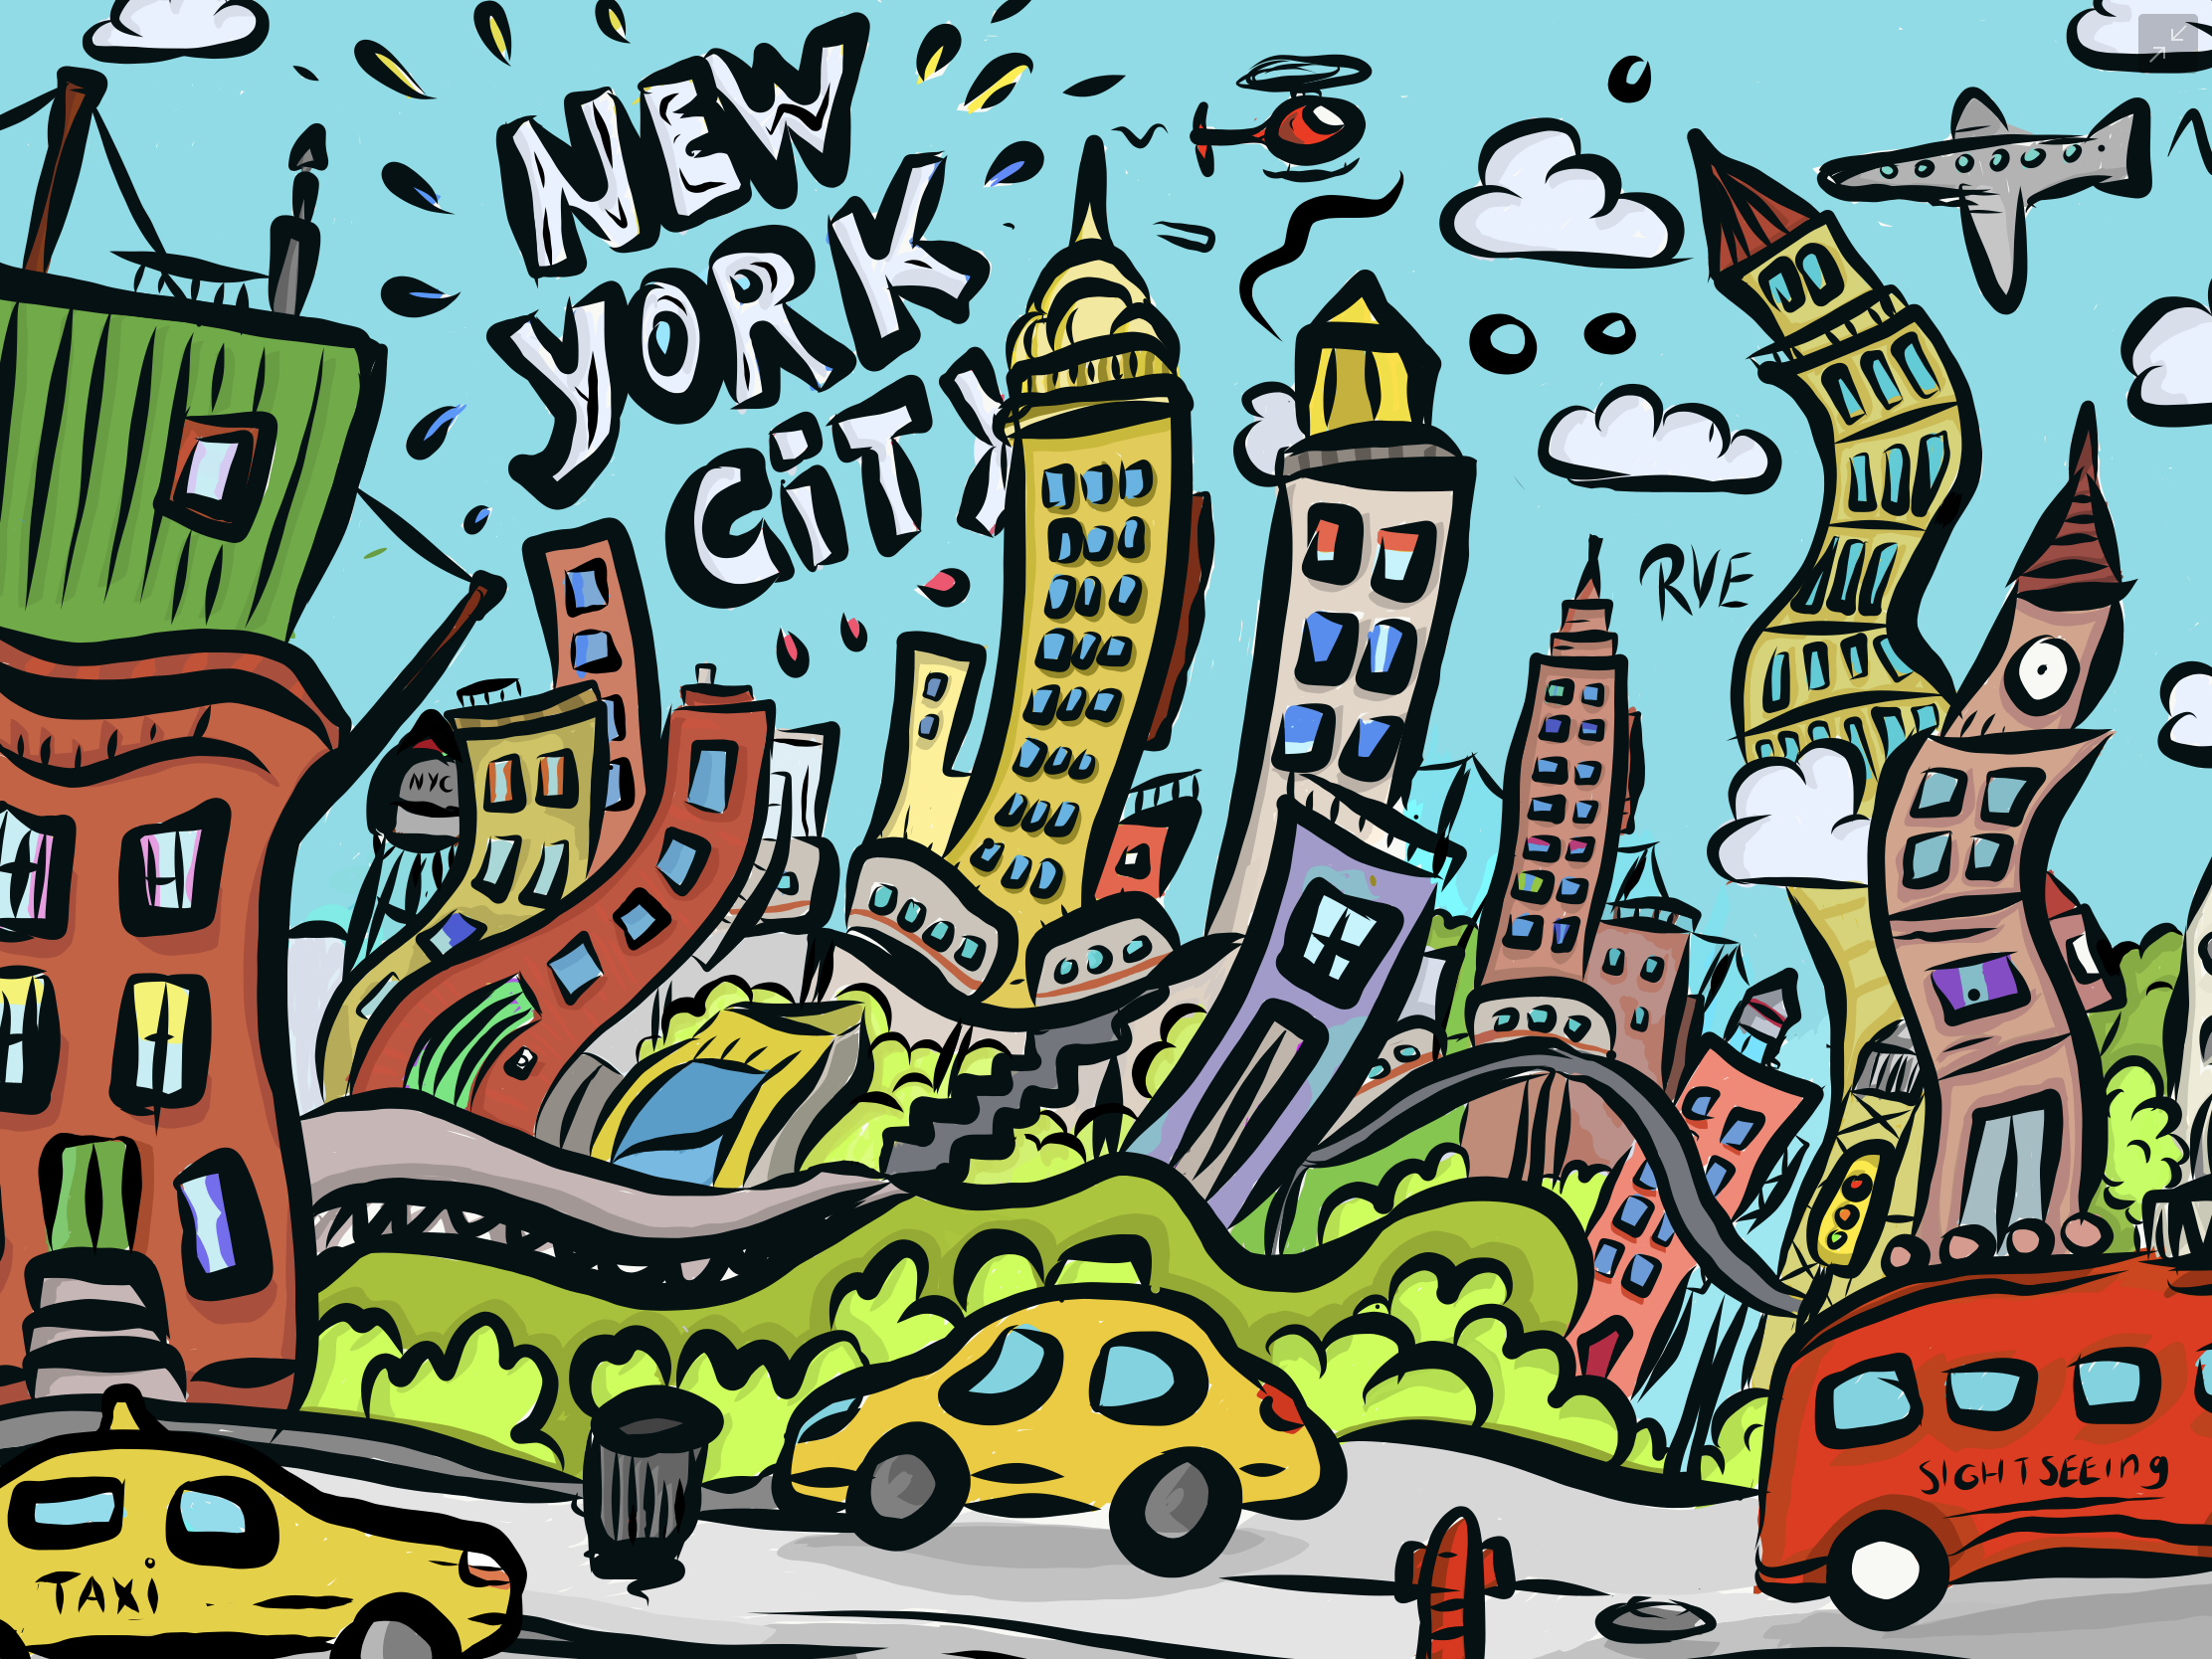 New York New York.  A spontaneous drawing while visiting NYC this spring. The vibrant city is always moving, so I implemented that in the images - RvE 2018  - iPad Pro, Adobe Draw